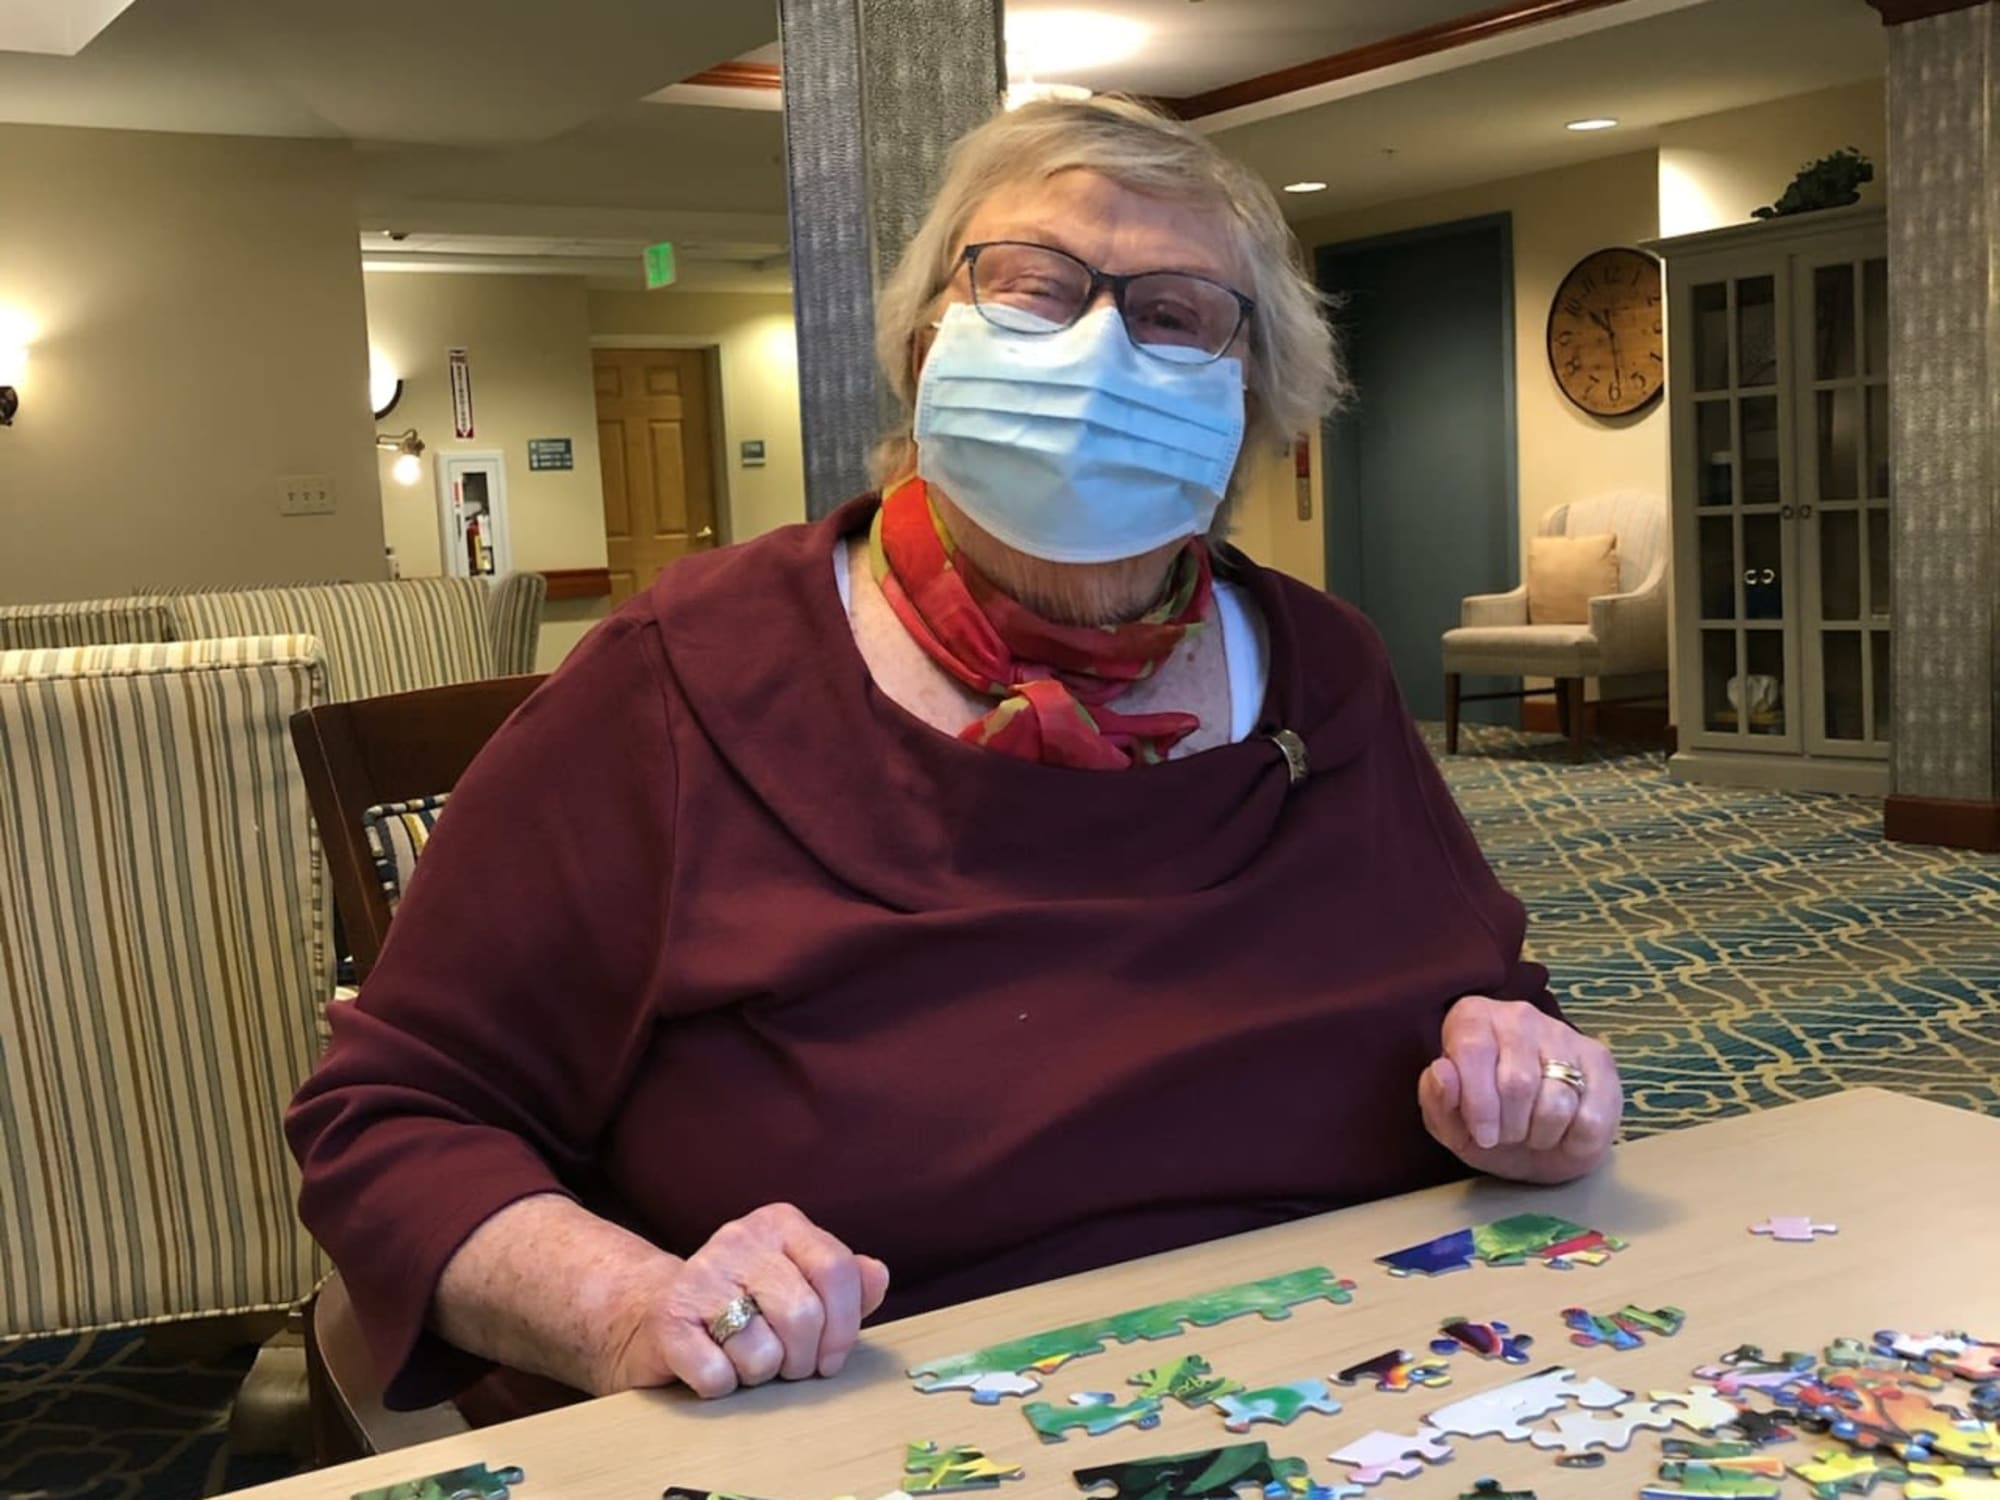 Puzzles at The Creekside in Woodinville, WA